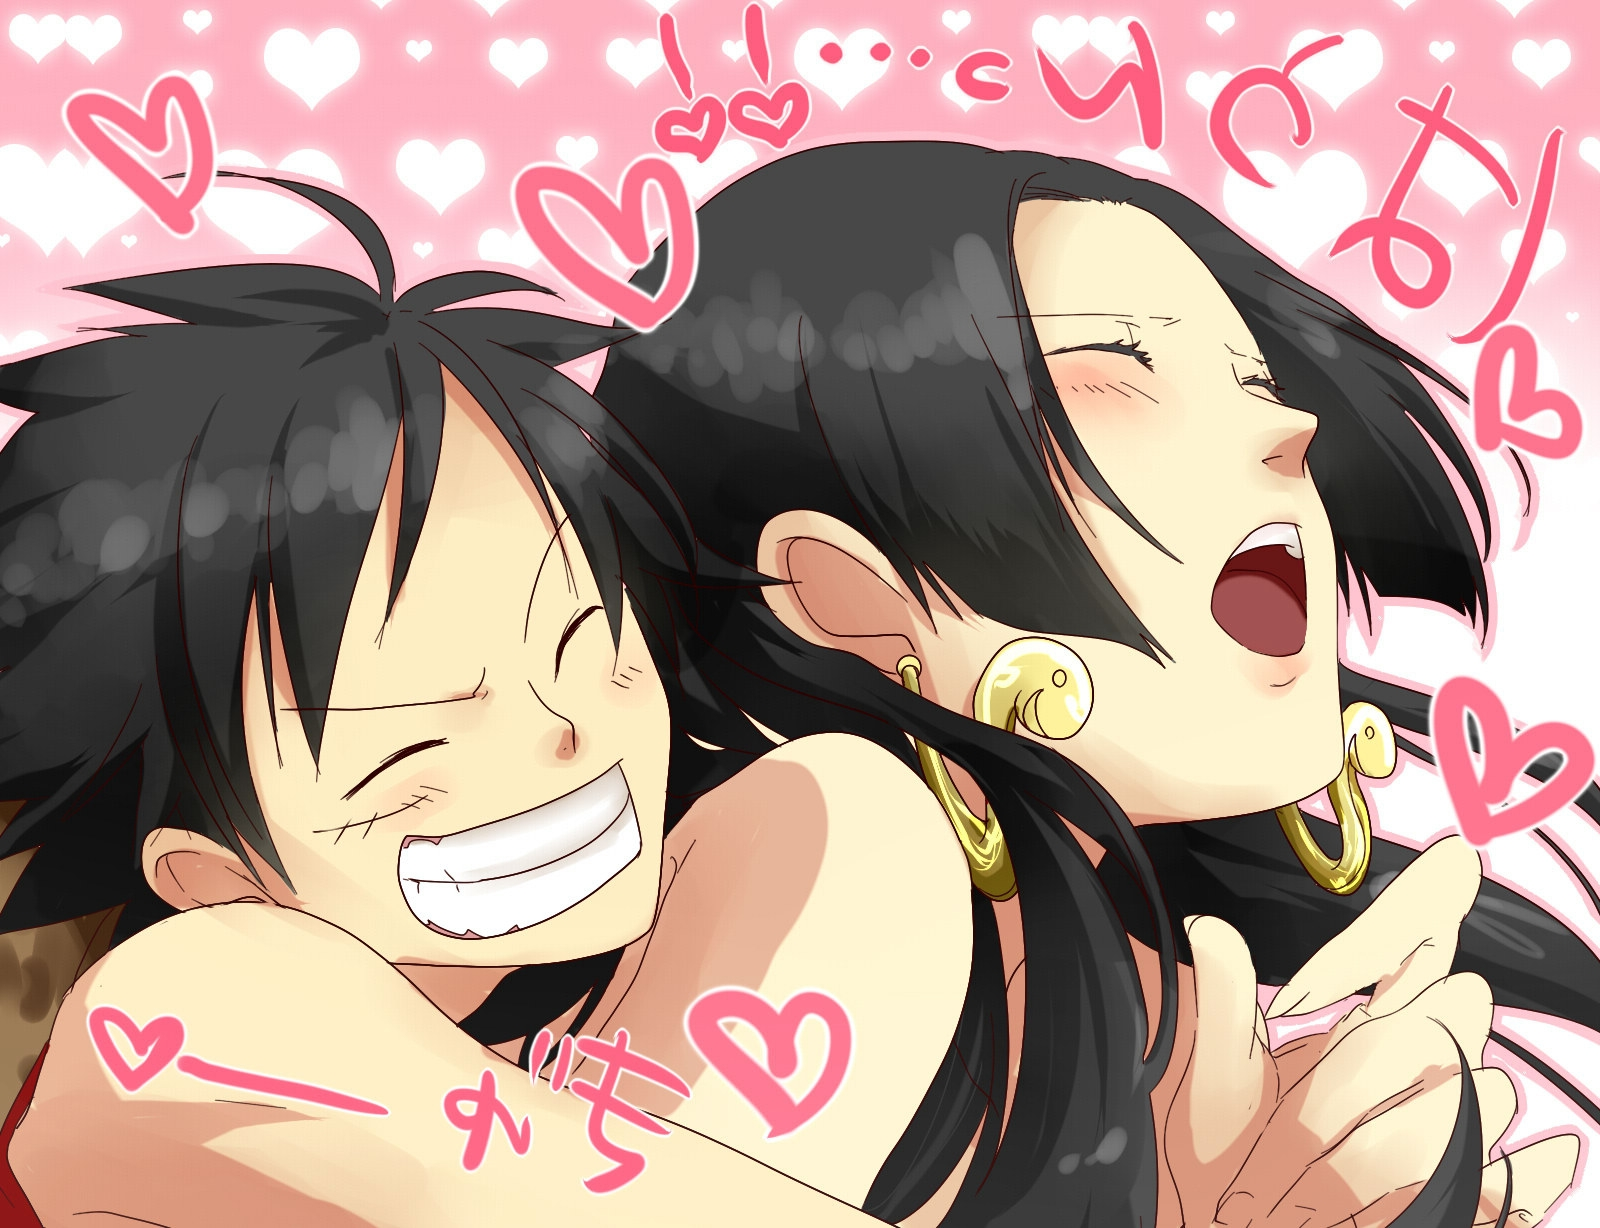 Toon sex pic ##00013061748 black hair blush boa hancock earrings heart heart highres jewelry long hair monkey d luffy one piece open mouth sexually suggestive smile sss3